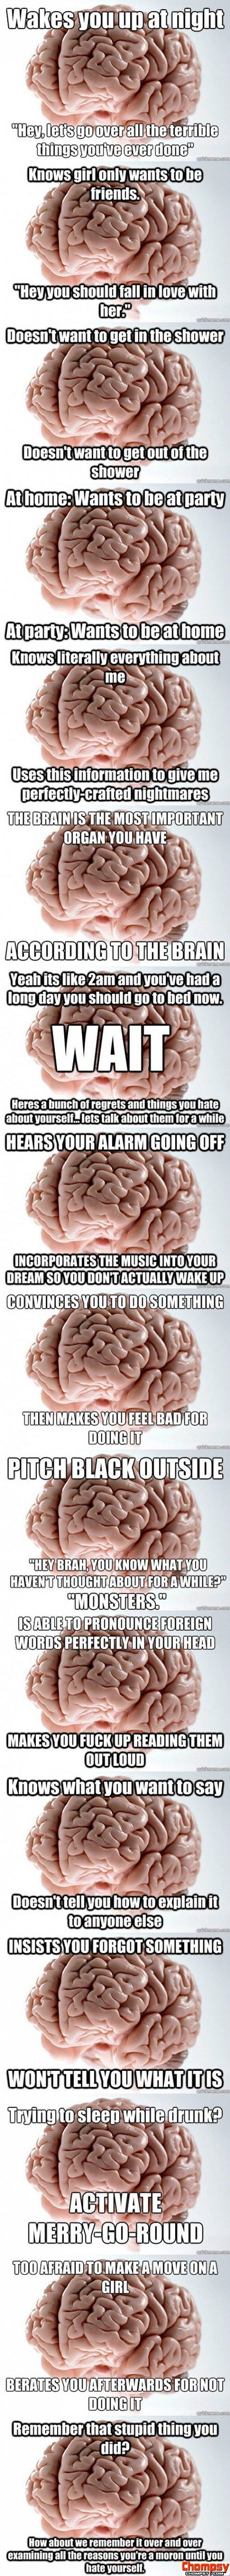 scumbag brain comp